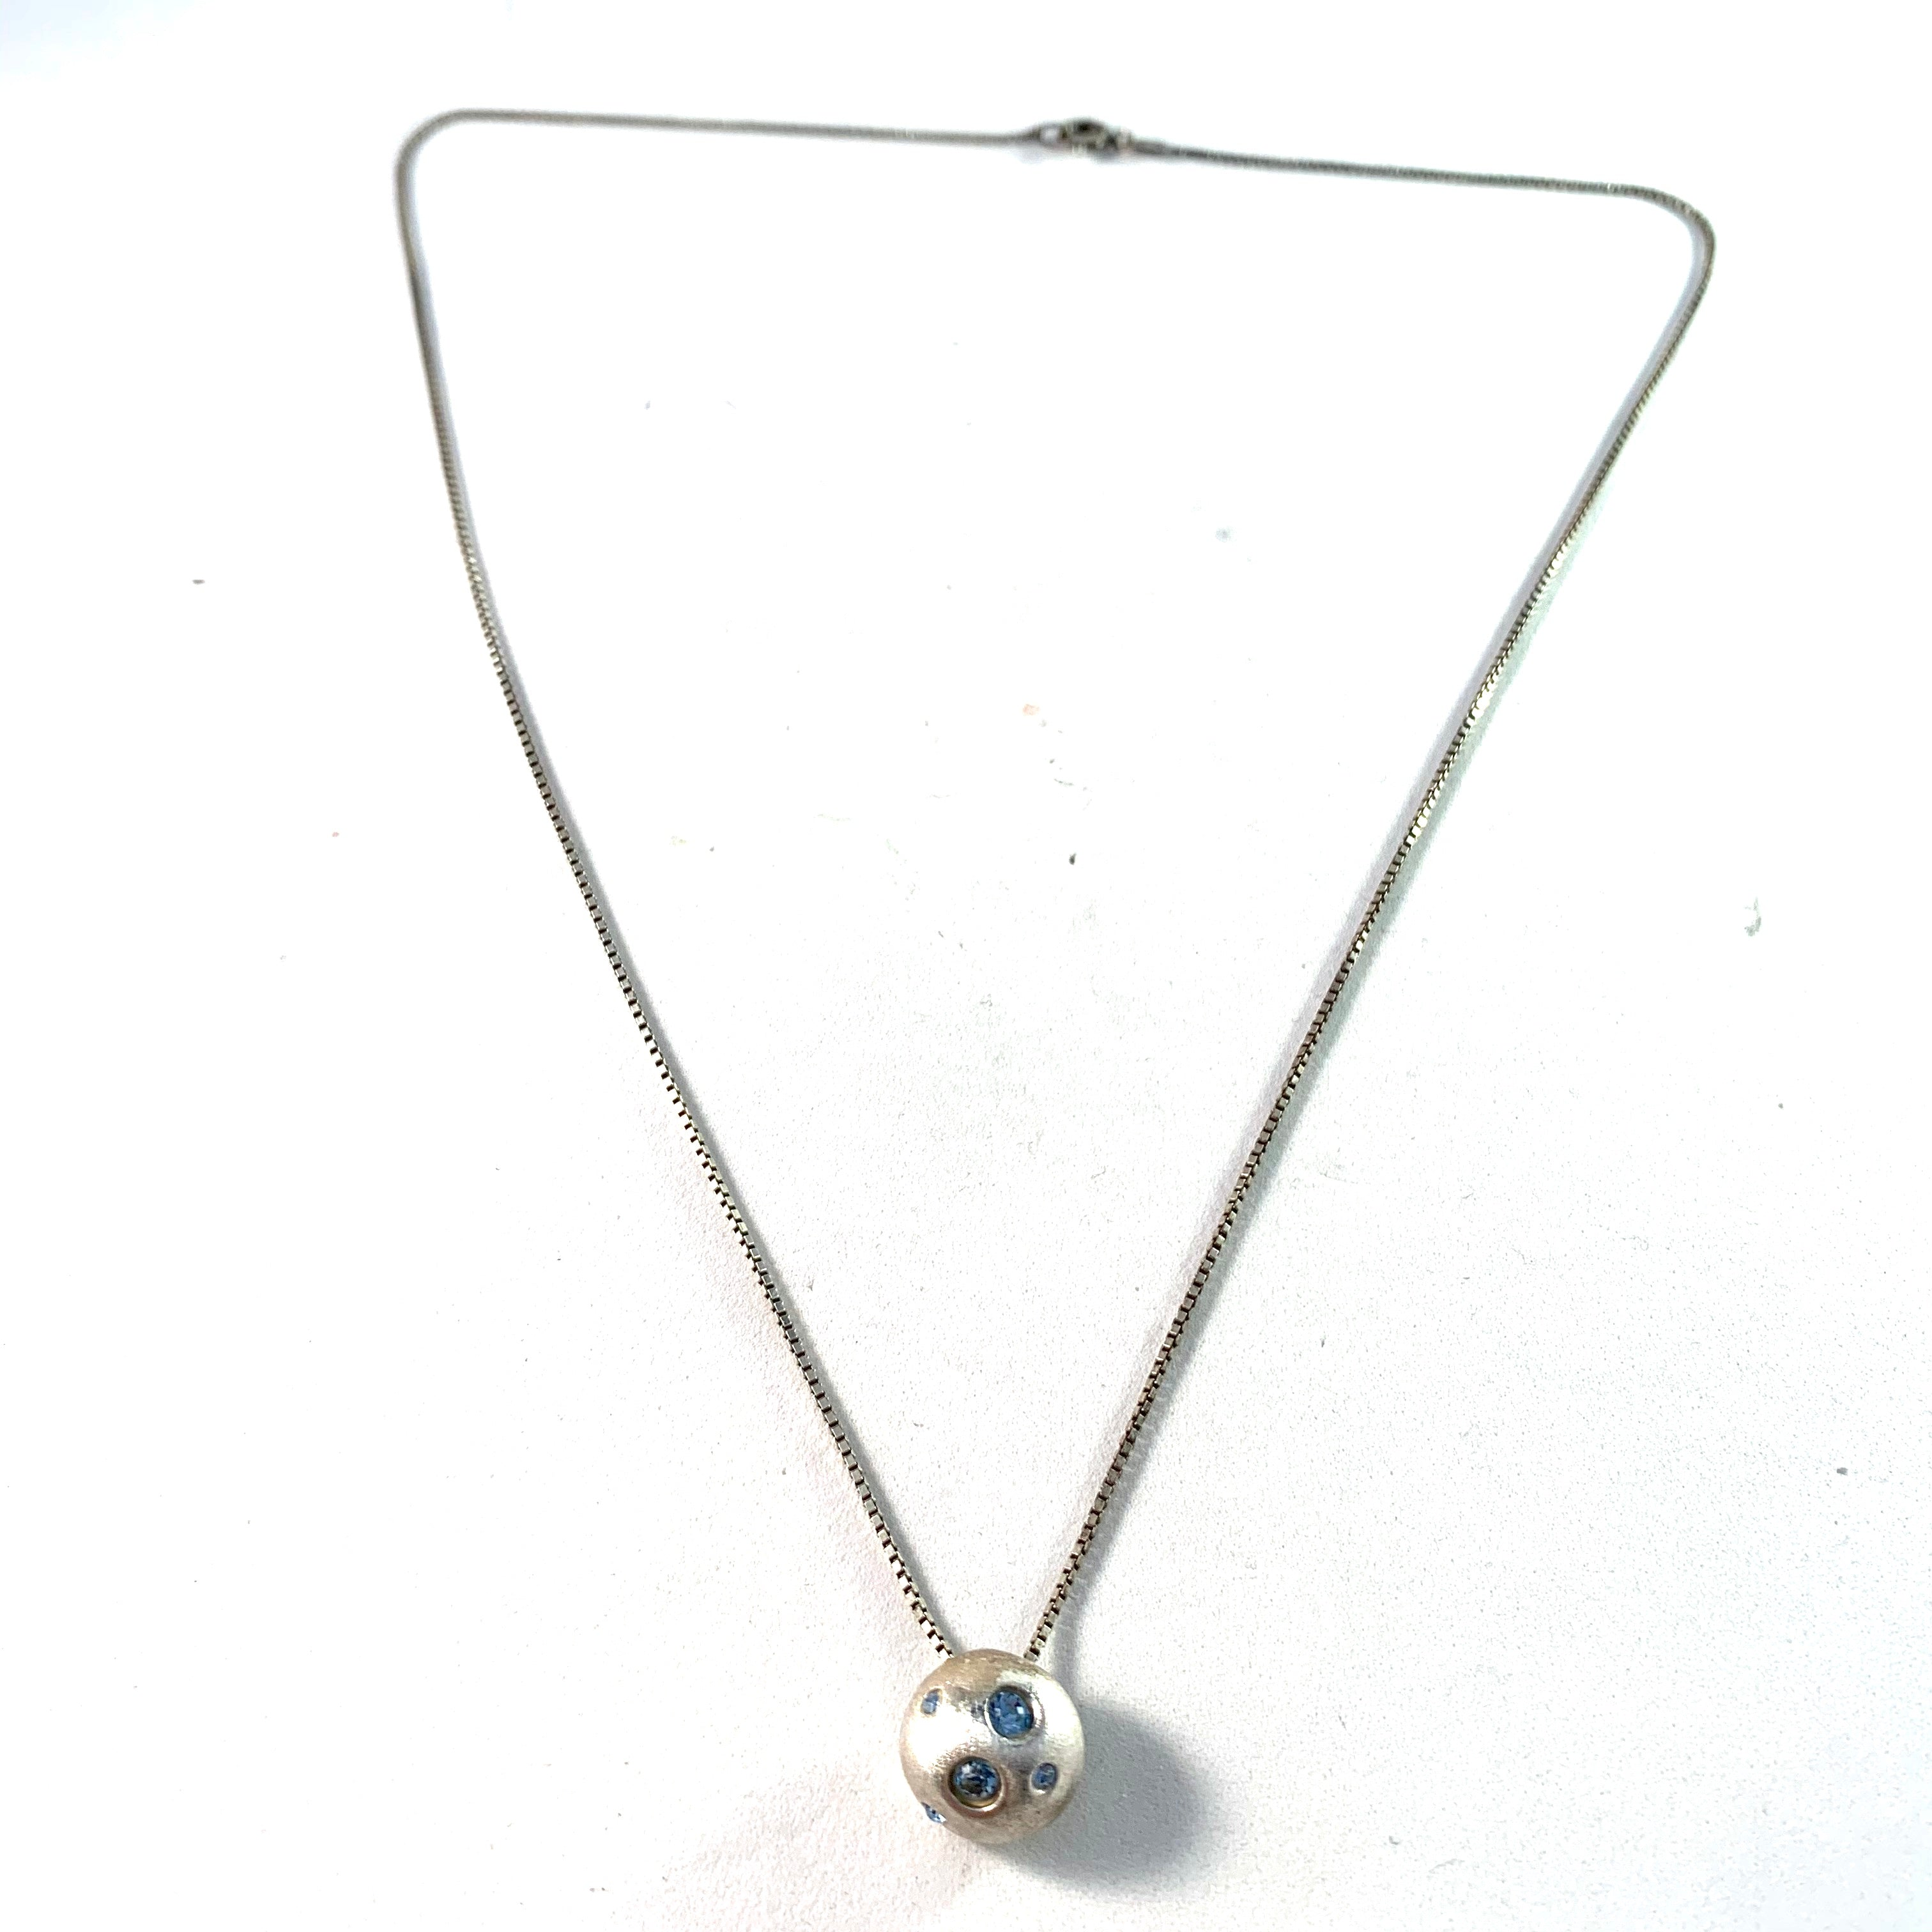 Yves Saint Laurent, France Sterling Silver Pendant Necklace.